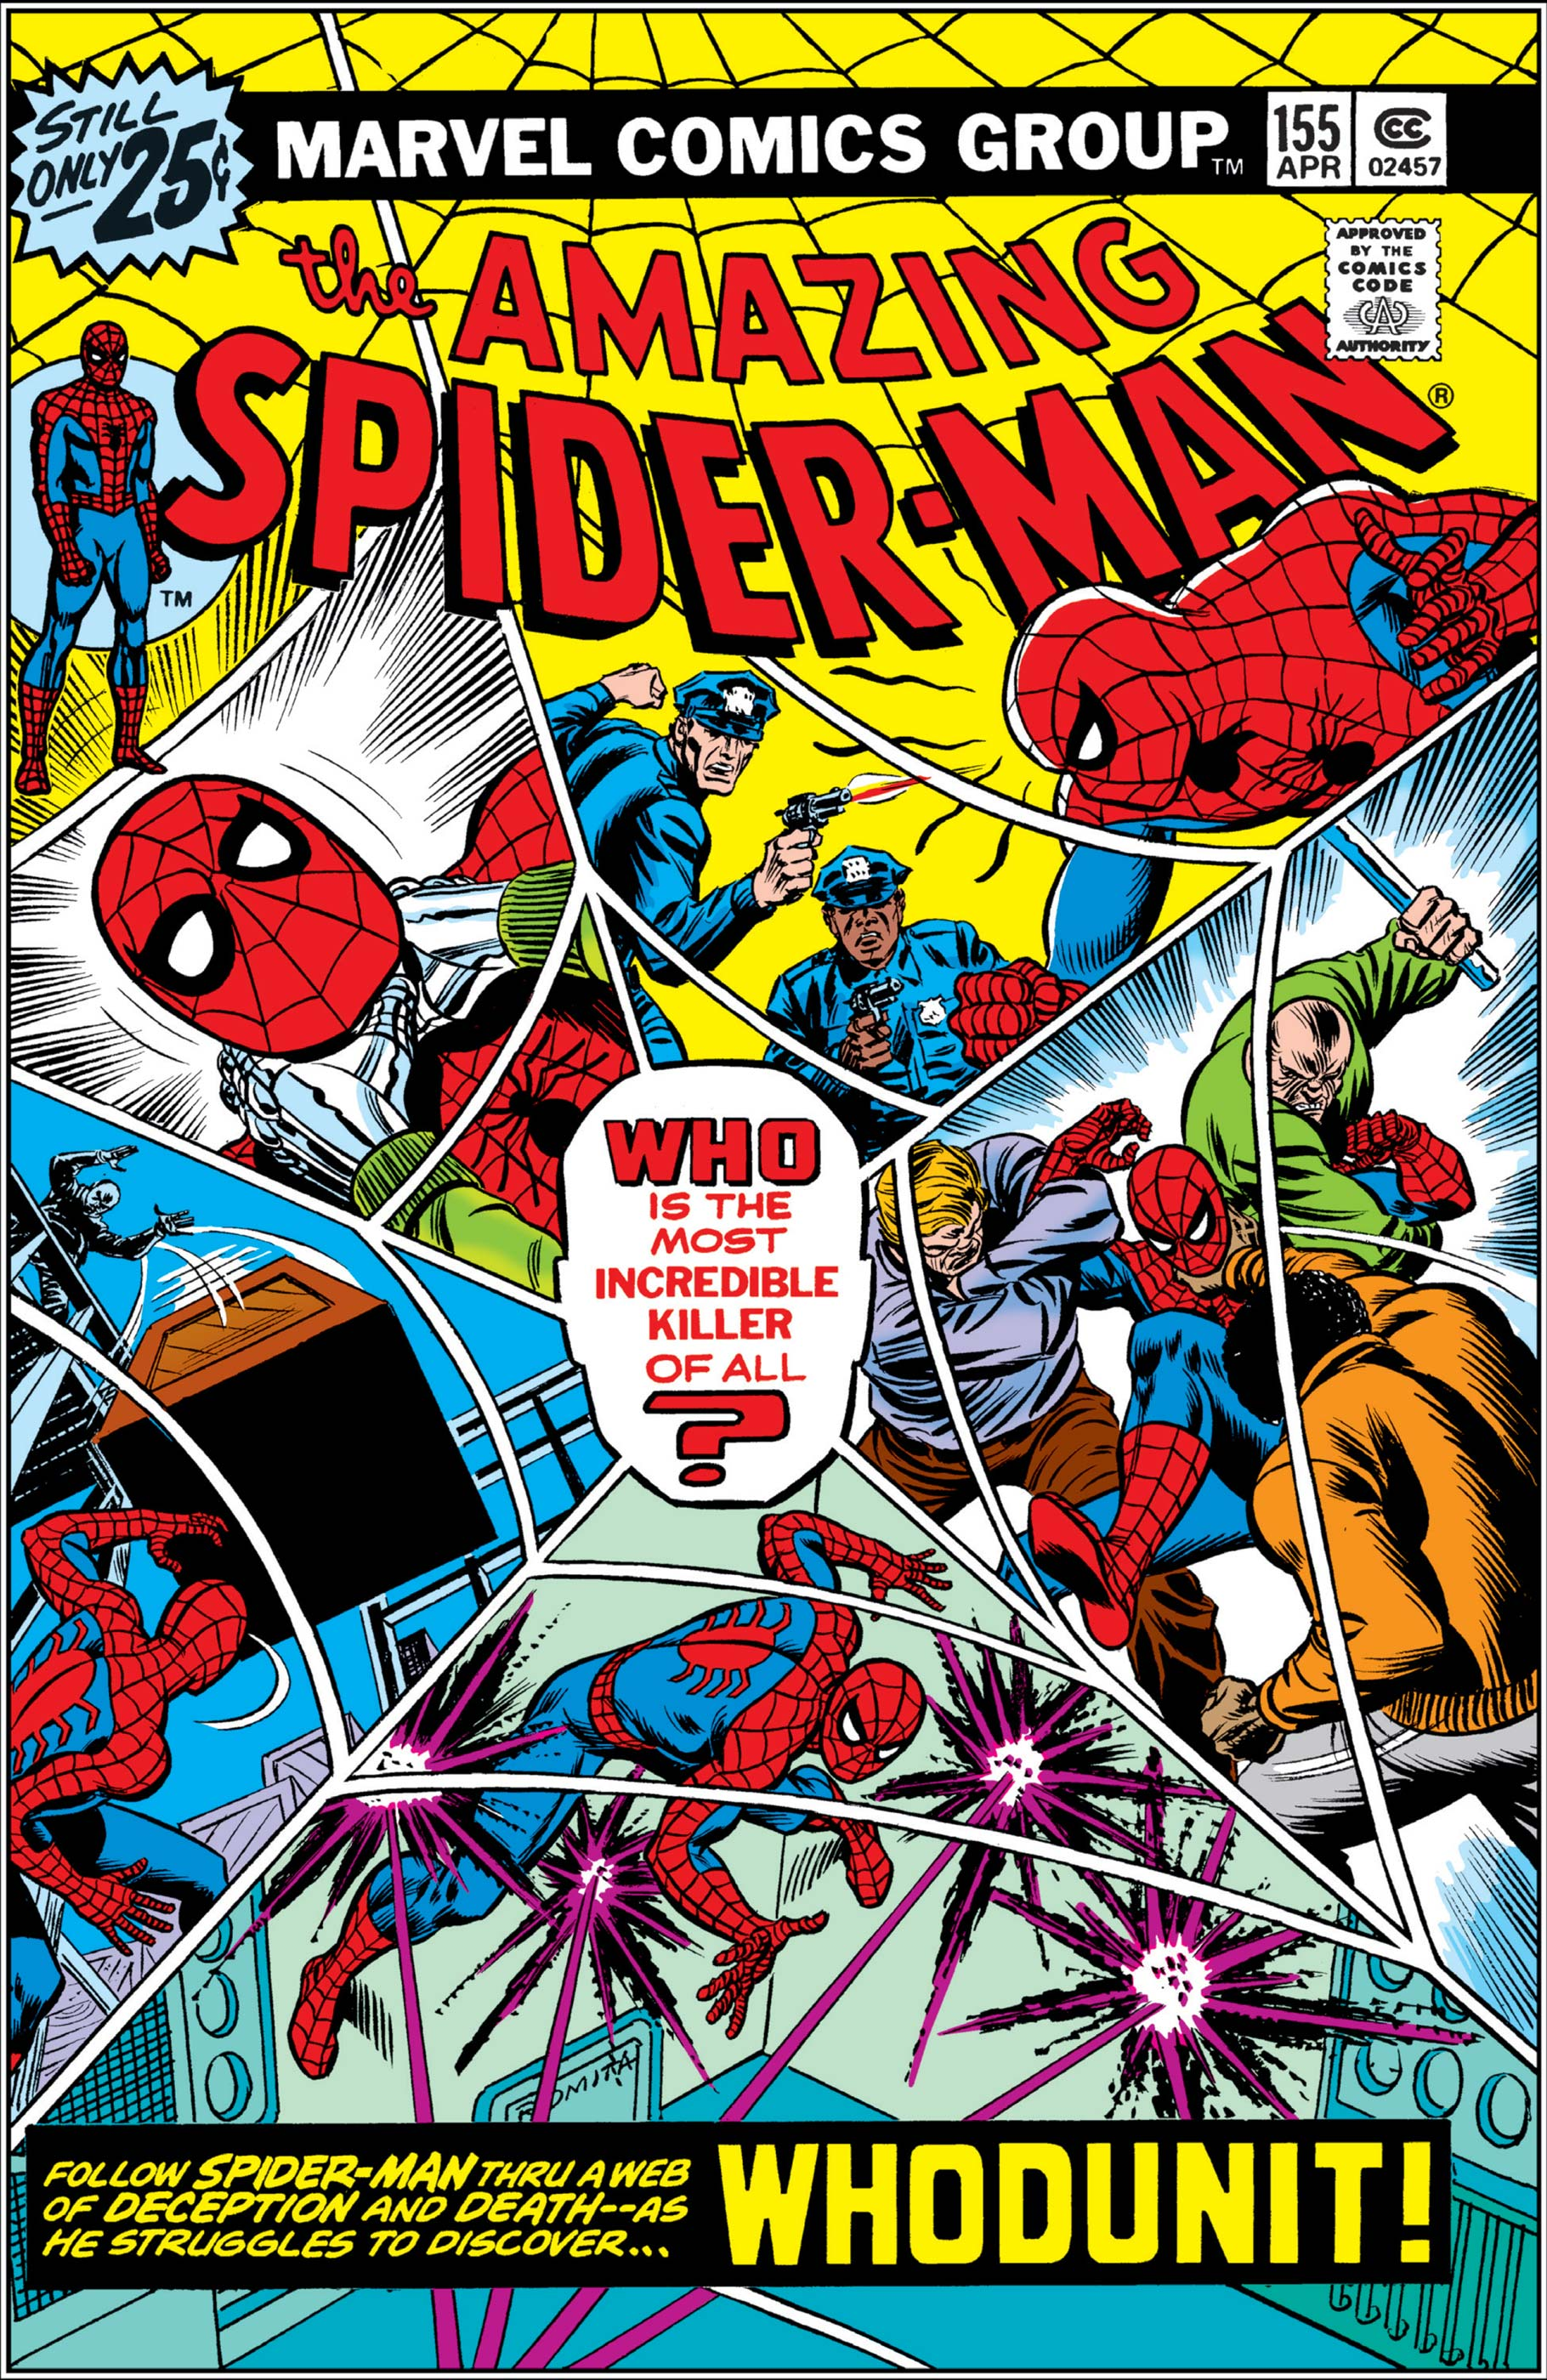 The Amazing Spider-Man (1963) #155